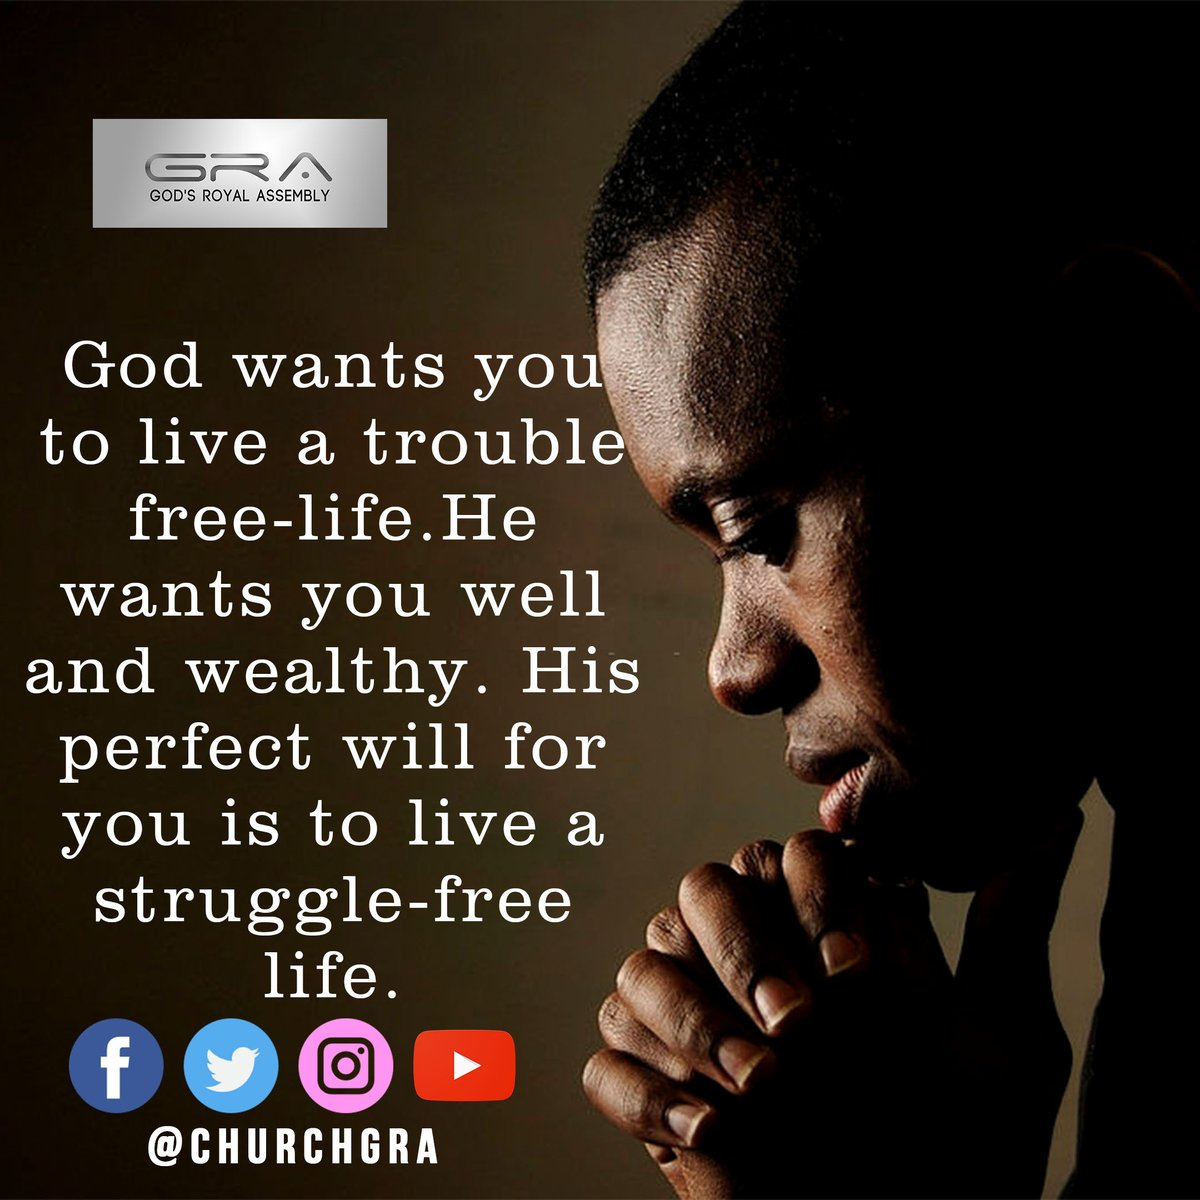 #Quotefortheday  God wants you to live a trouble-free life. He wants you well and wealthy. His perfect will for you is to live a struggle-free life.  #SaturdayThoughts